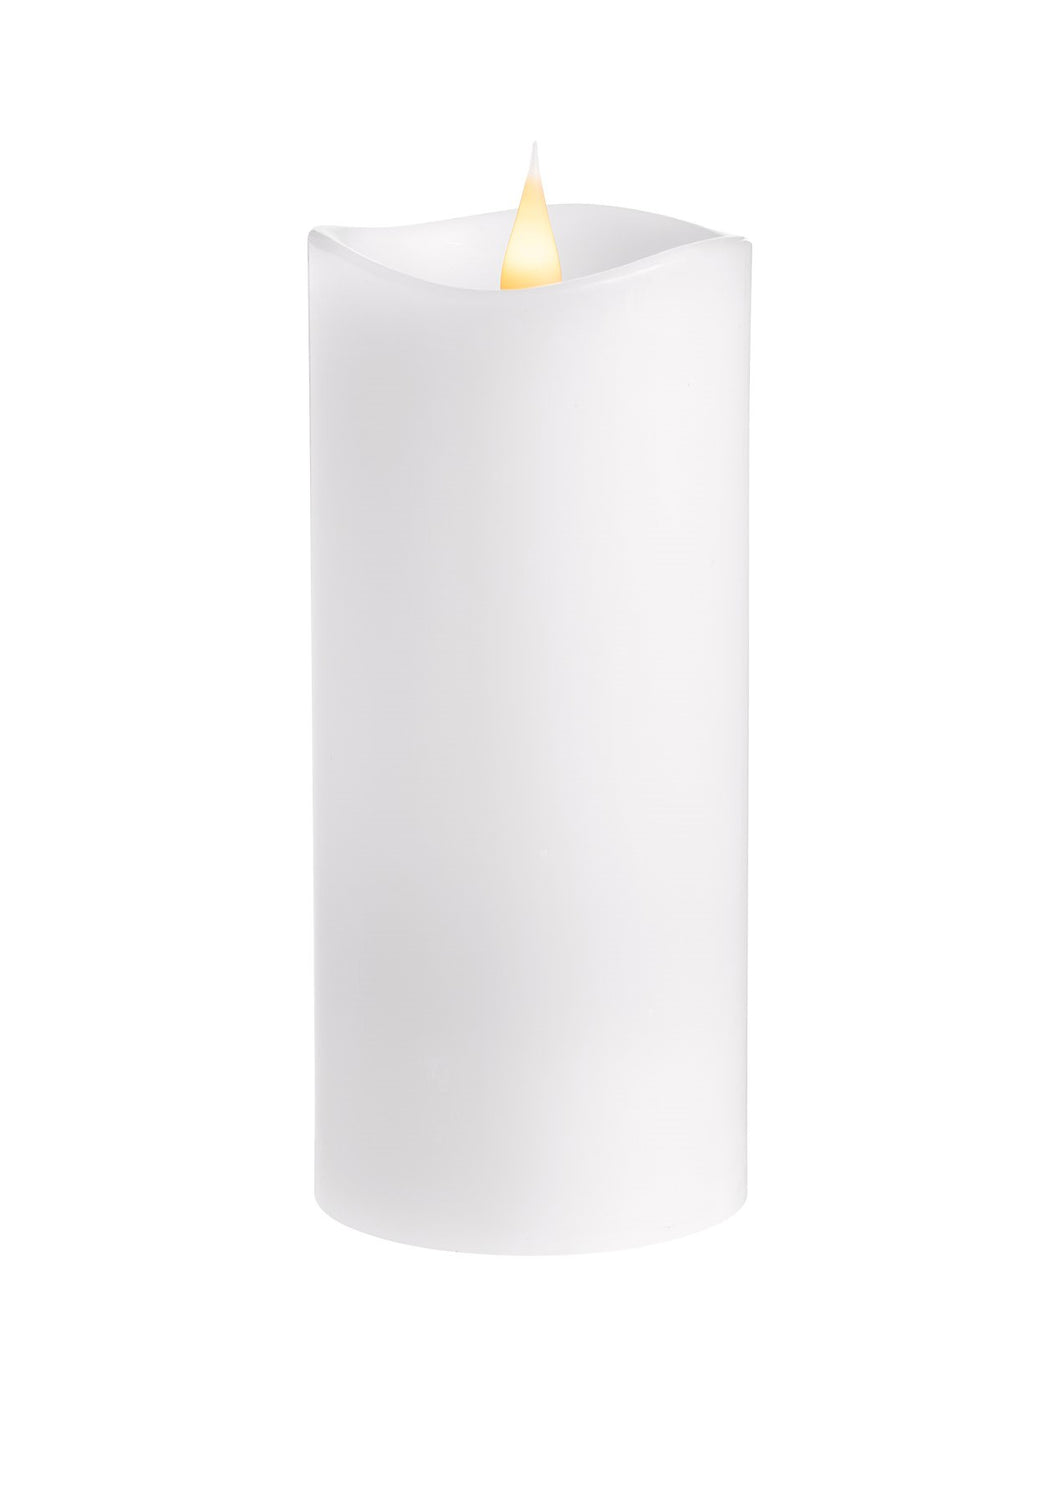 LED Candle 8x18cm - White Homewares nz